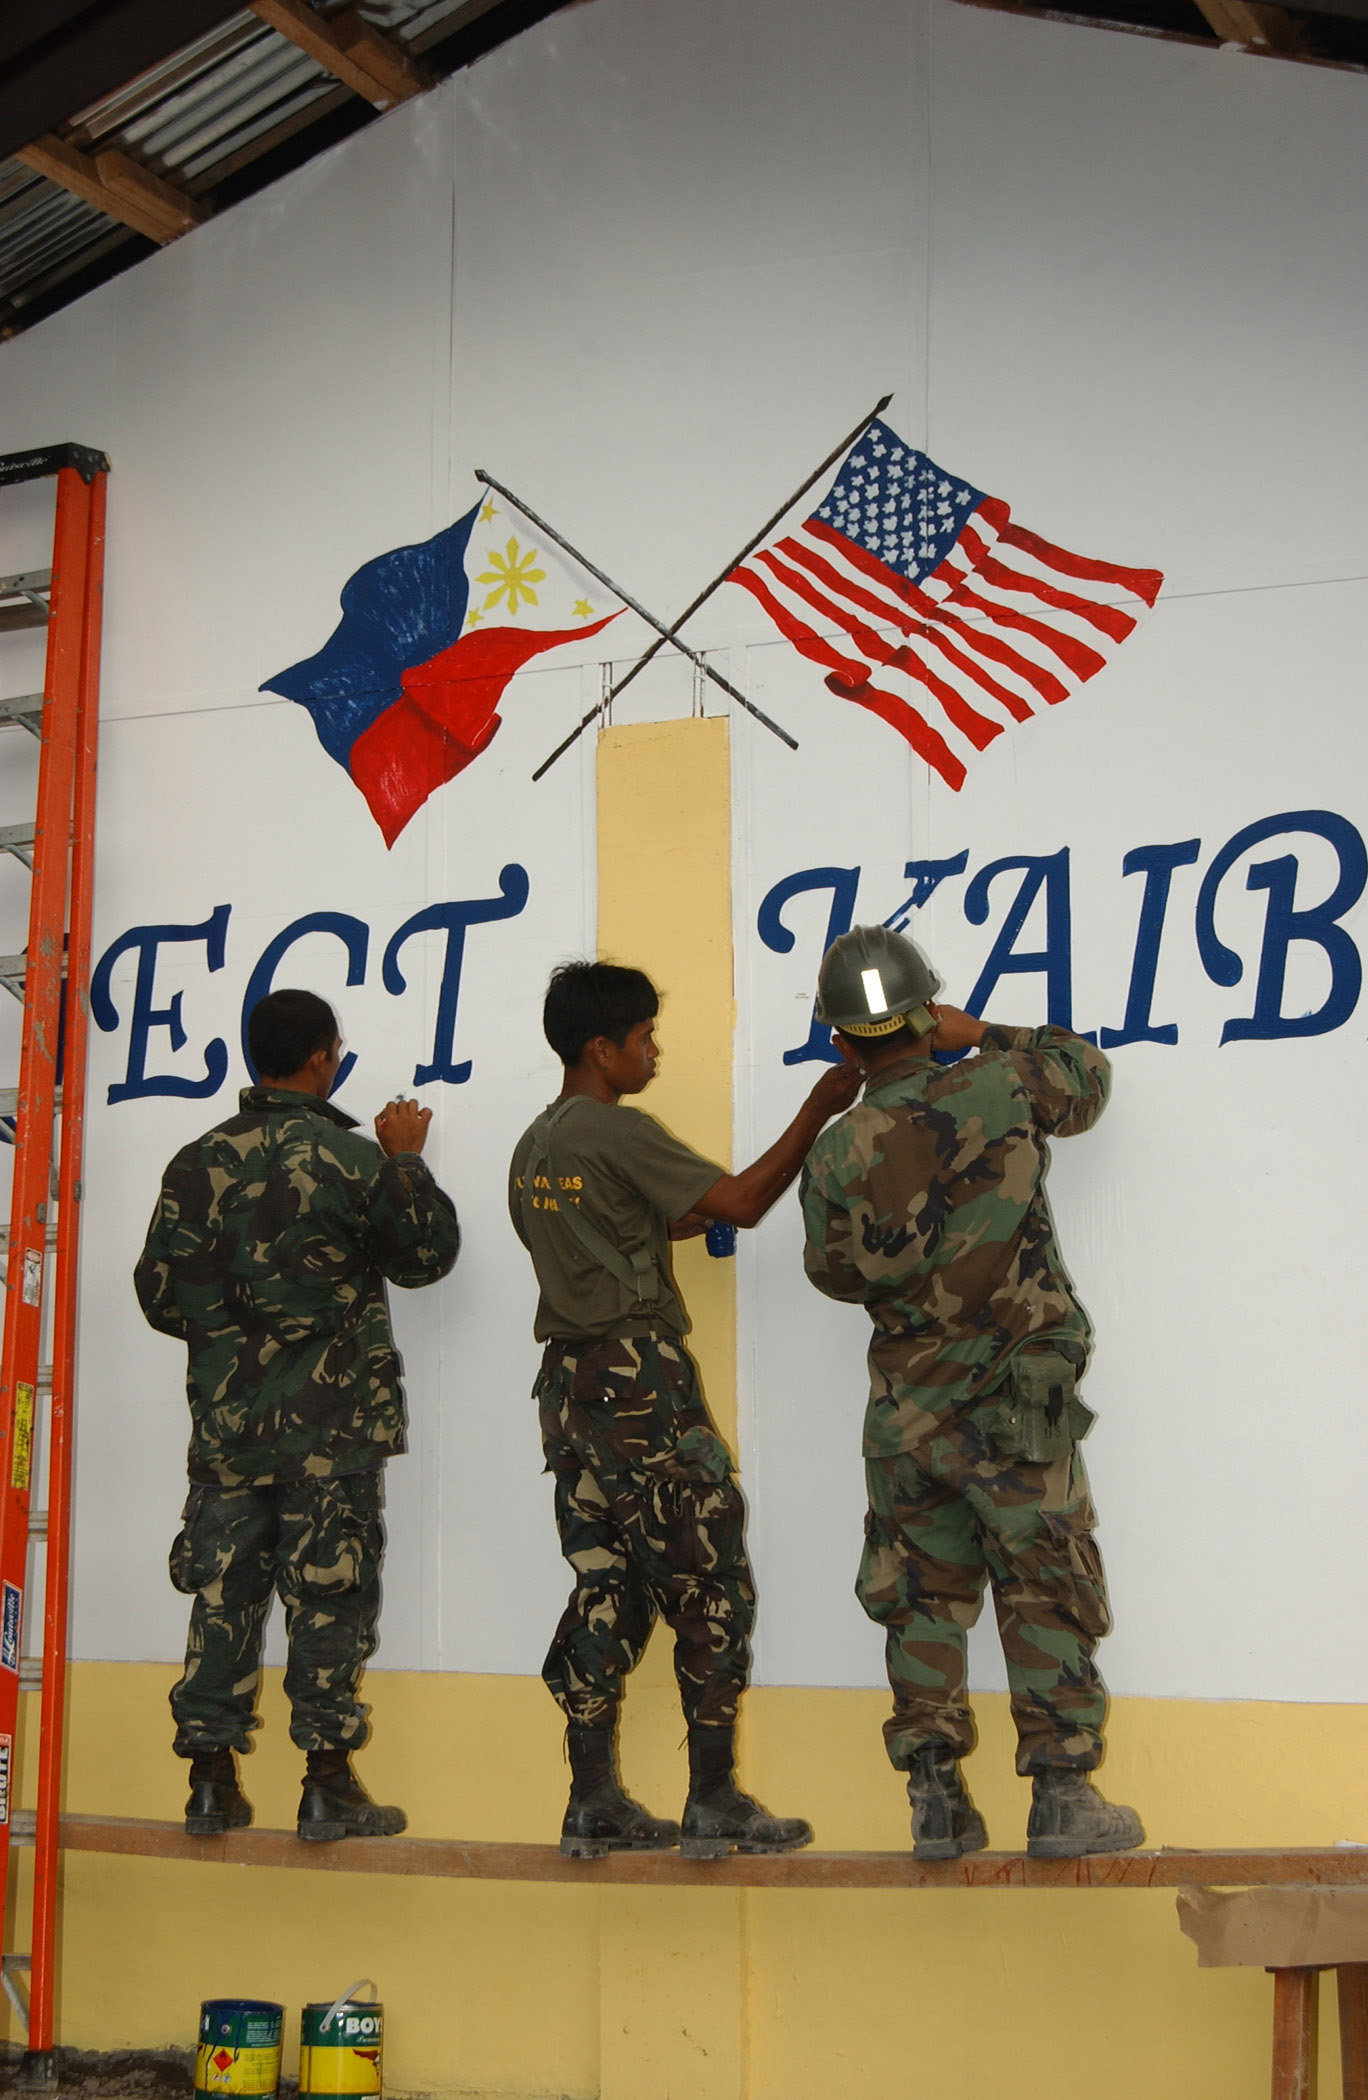 mexico and us relationship with the philippines